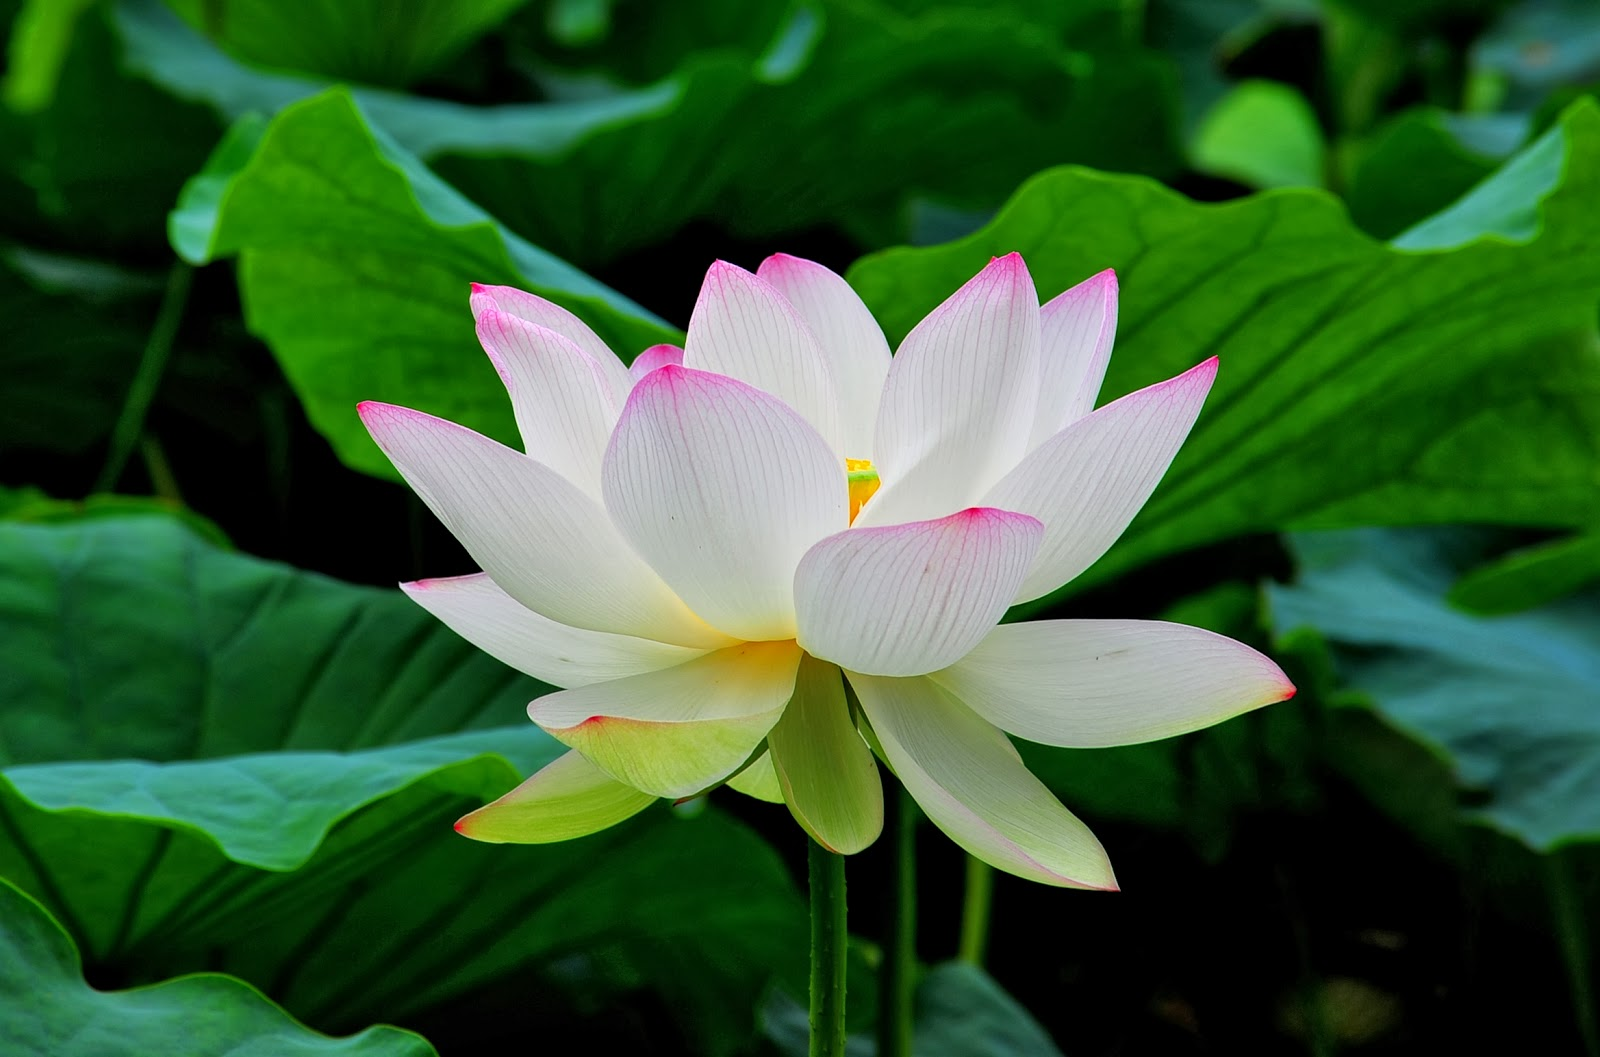 Lotus – the national flower of India